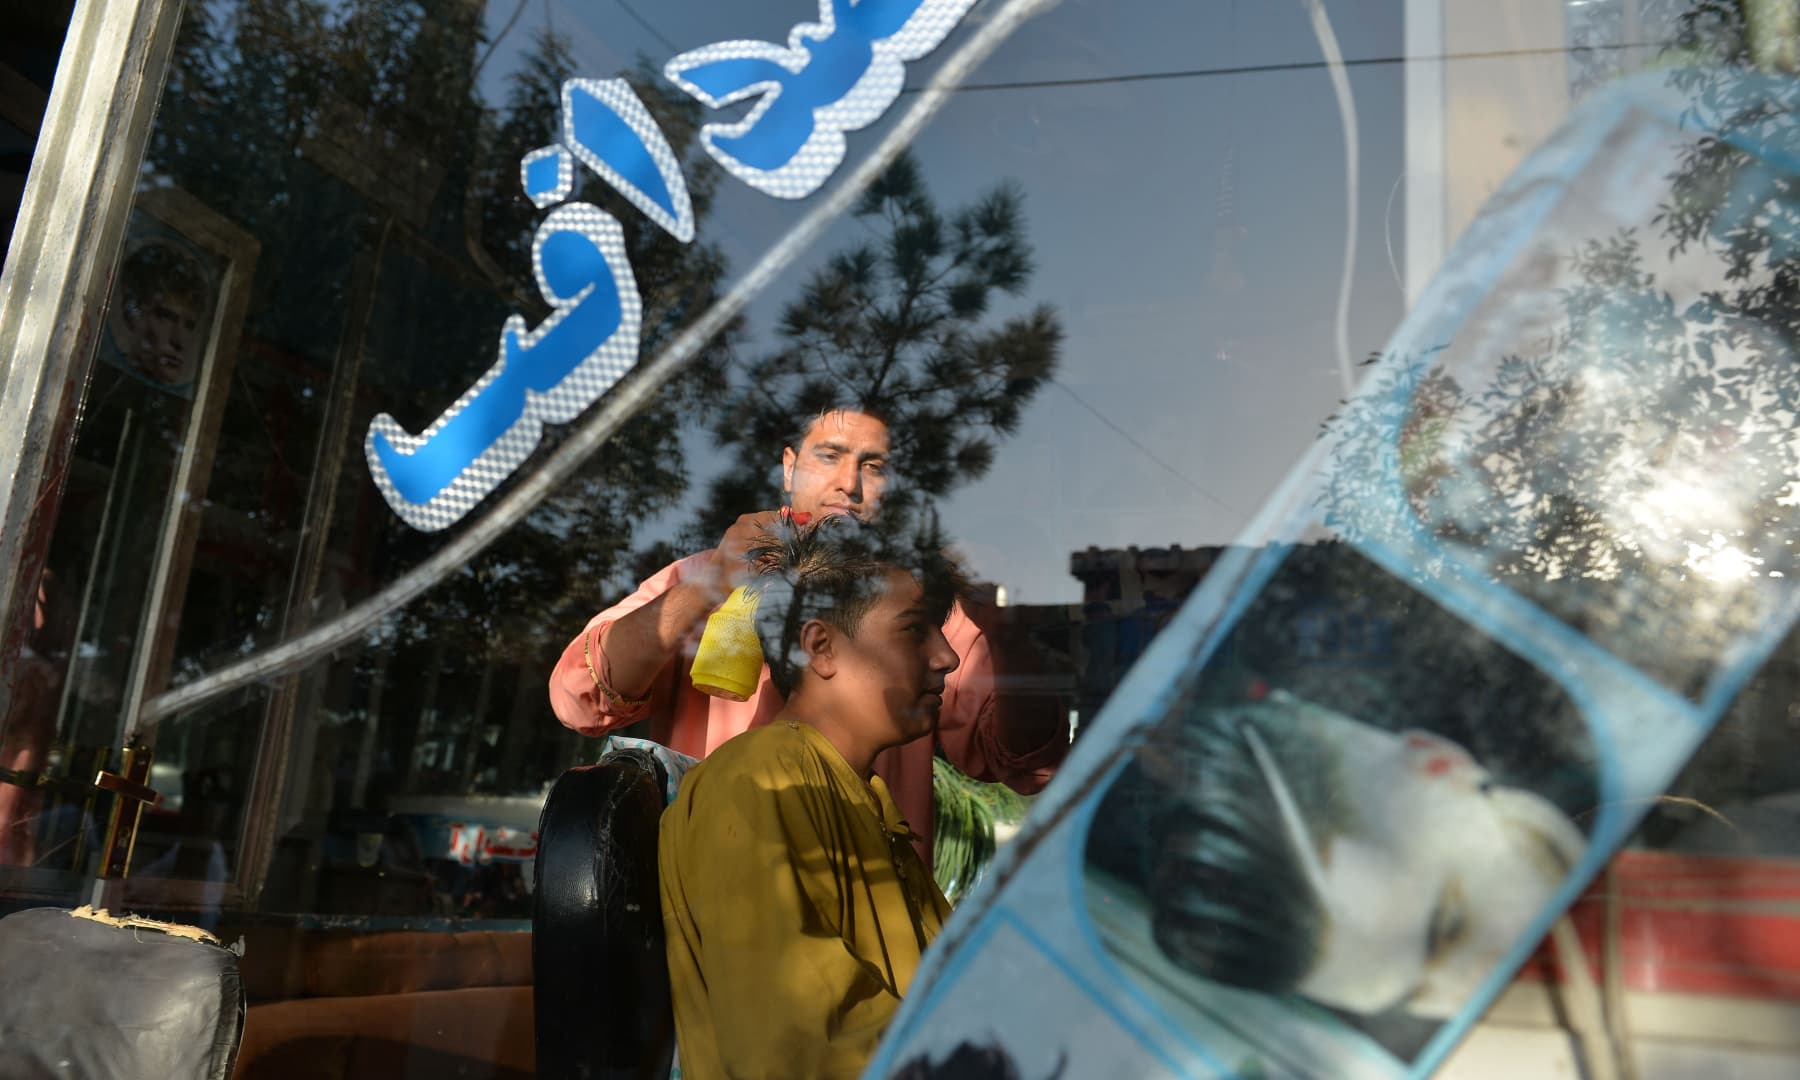 Twenty-four-year-old Nader Shah (L) attends a customer at his barbershop in Herat, Afghanistan on September 19, 2021. — AFP